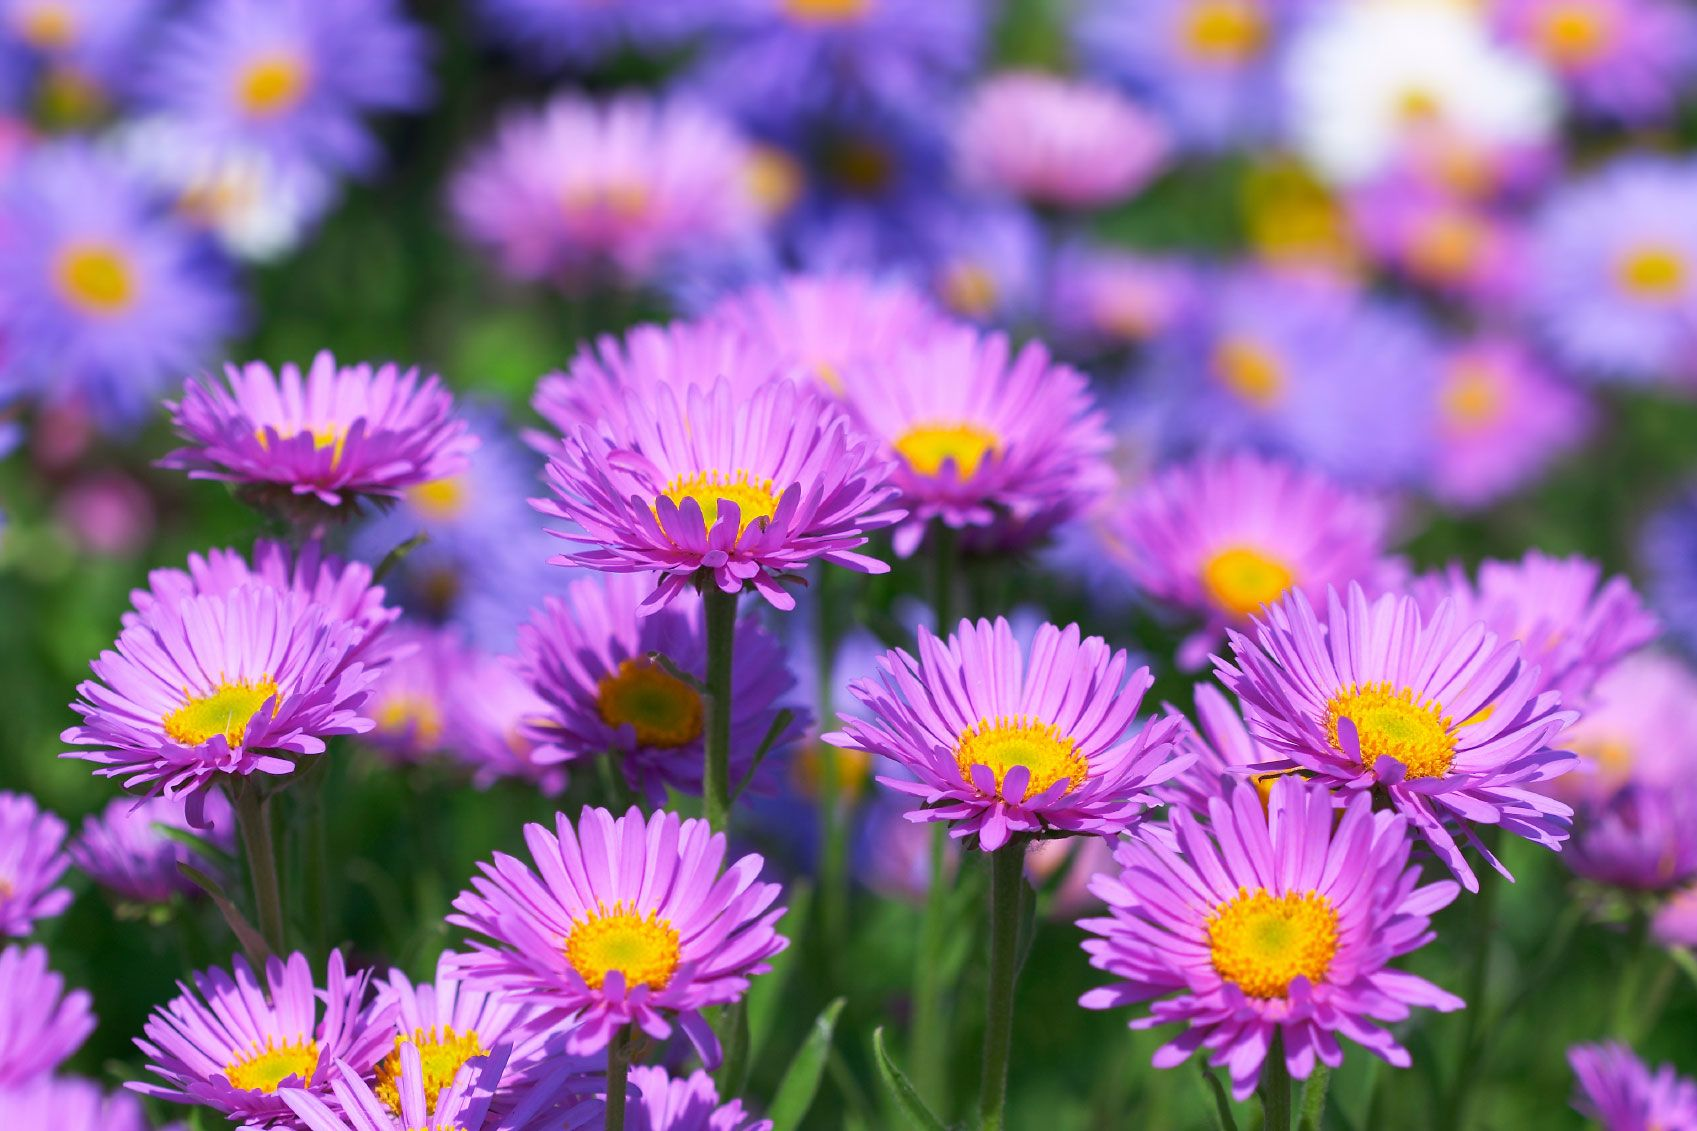 Growing Asters How To Grow Aster Flowers In Your Garden Aster Flower Flower Landscape Planting Flowers